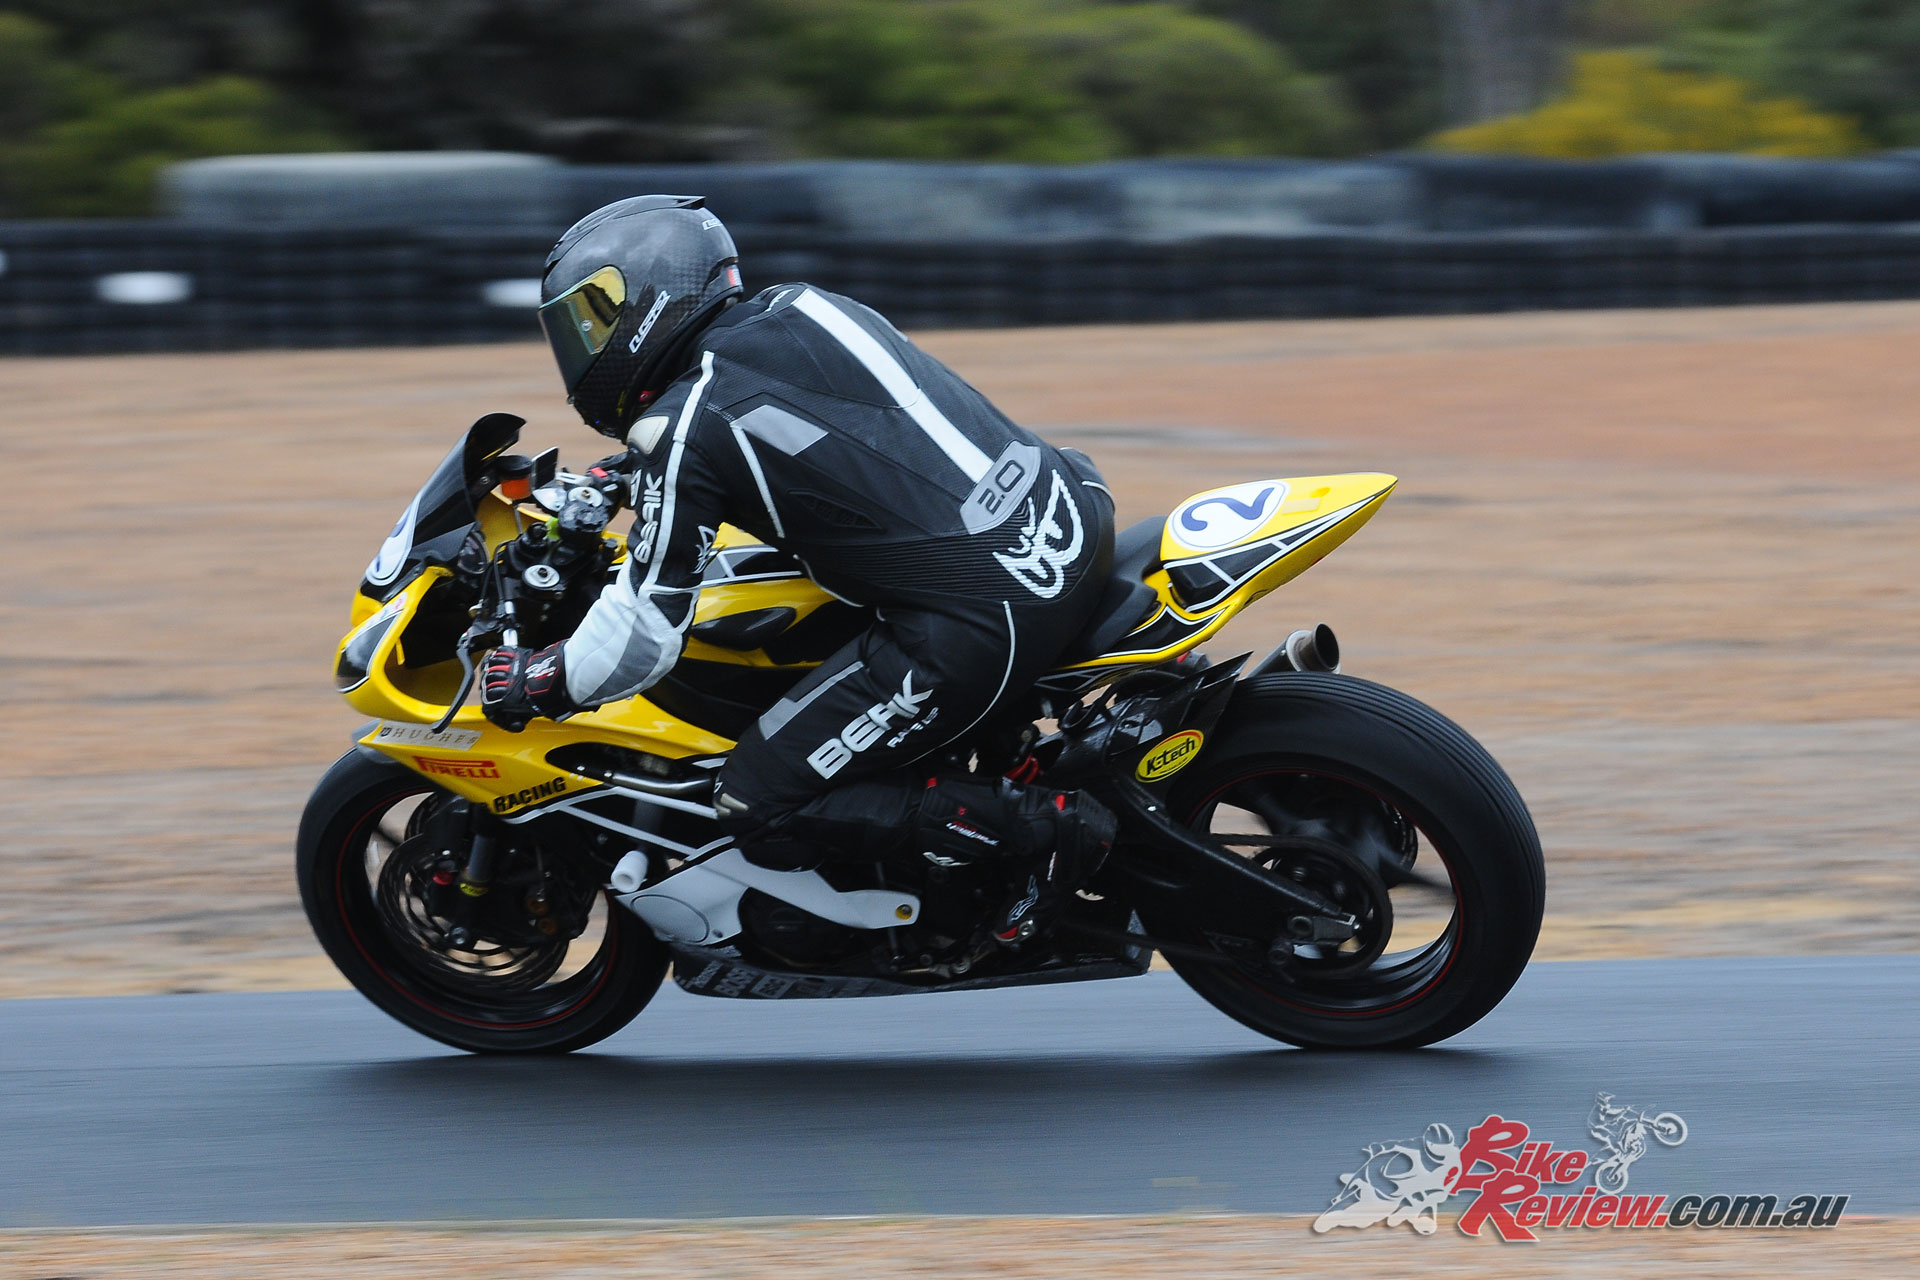 Leigh Boujos claimed the Supersport title, despite a mix-up which prevented him lining up on the grid in one race - WA State RR Championship - Round 4, 2018